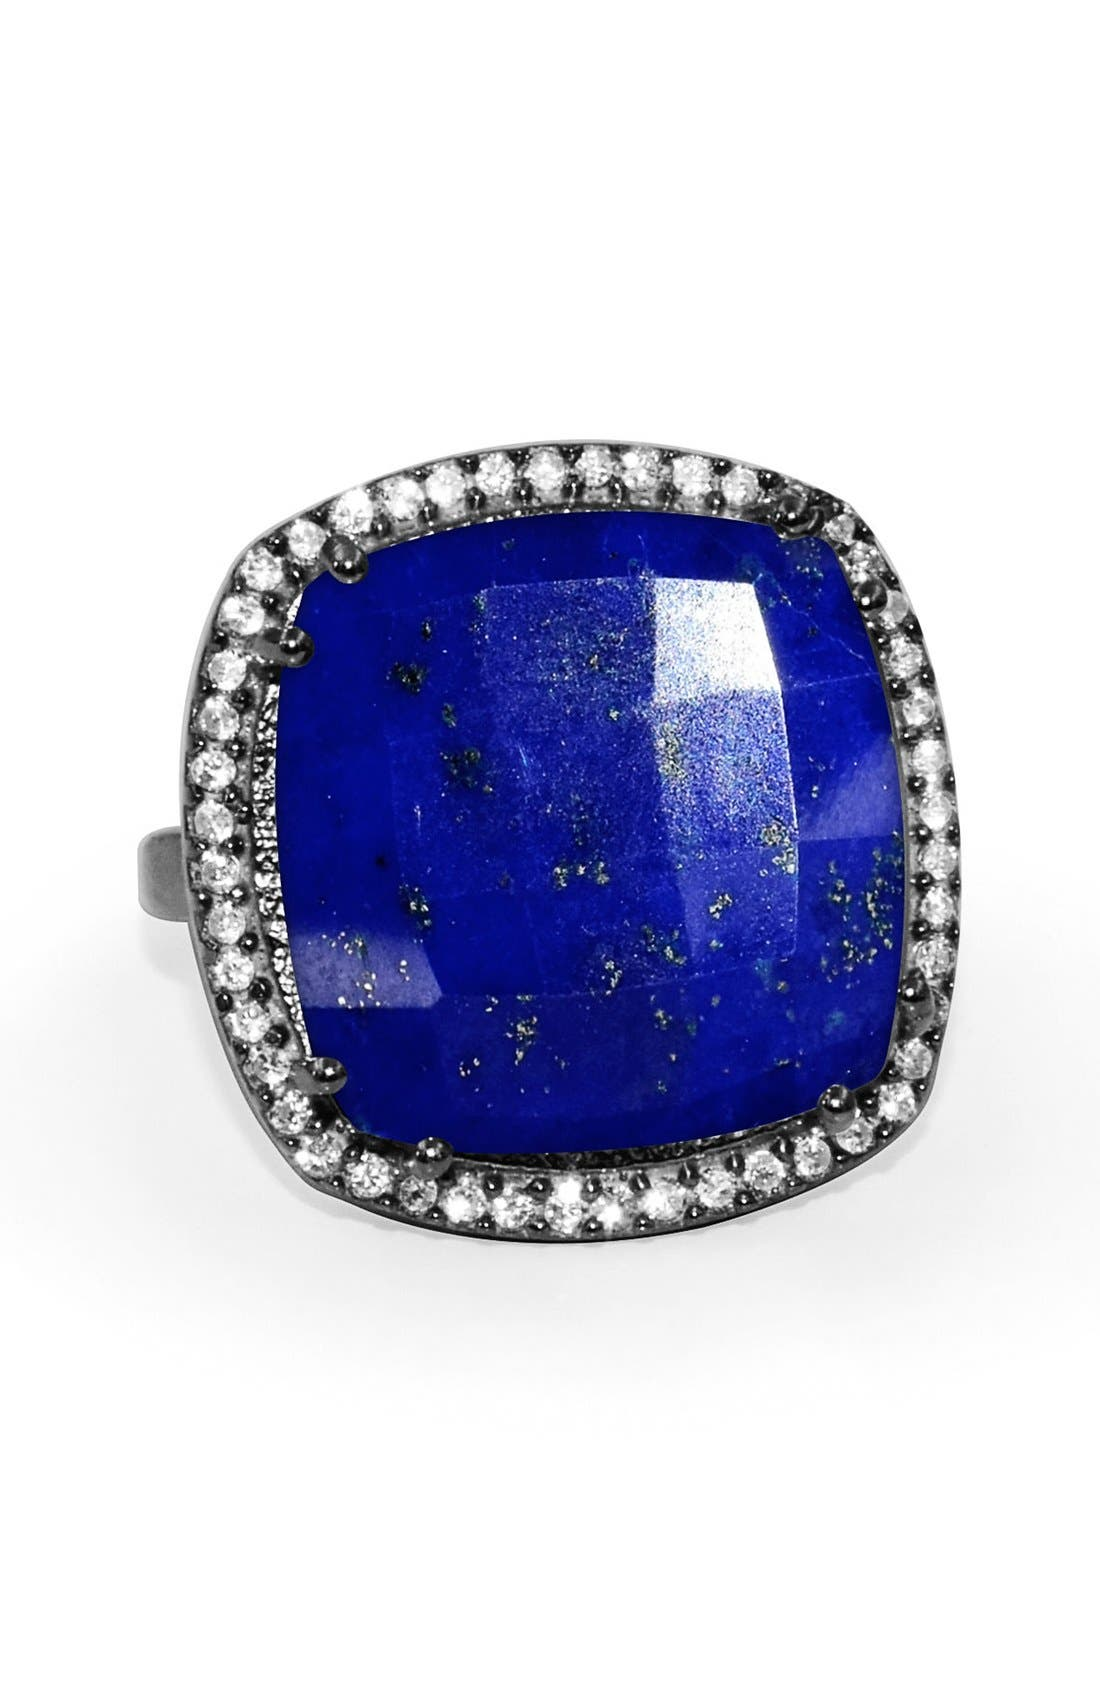 Alternate Image 1 Selected - Susan Hanover Designs Semiprecious Stone Ring